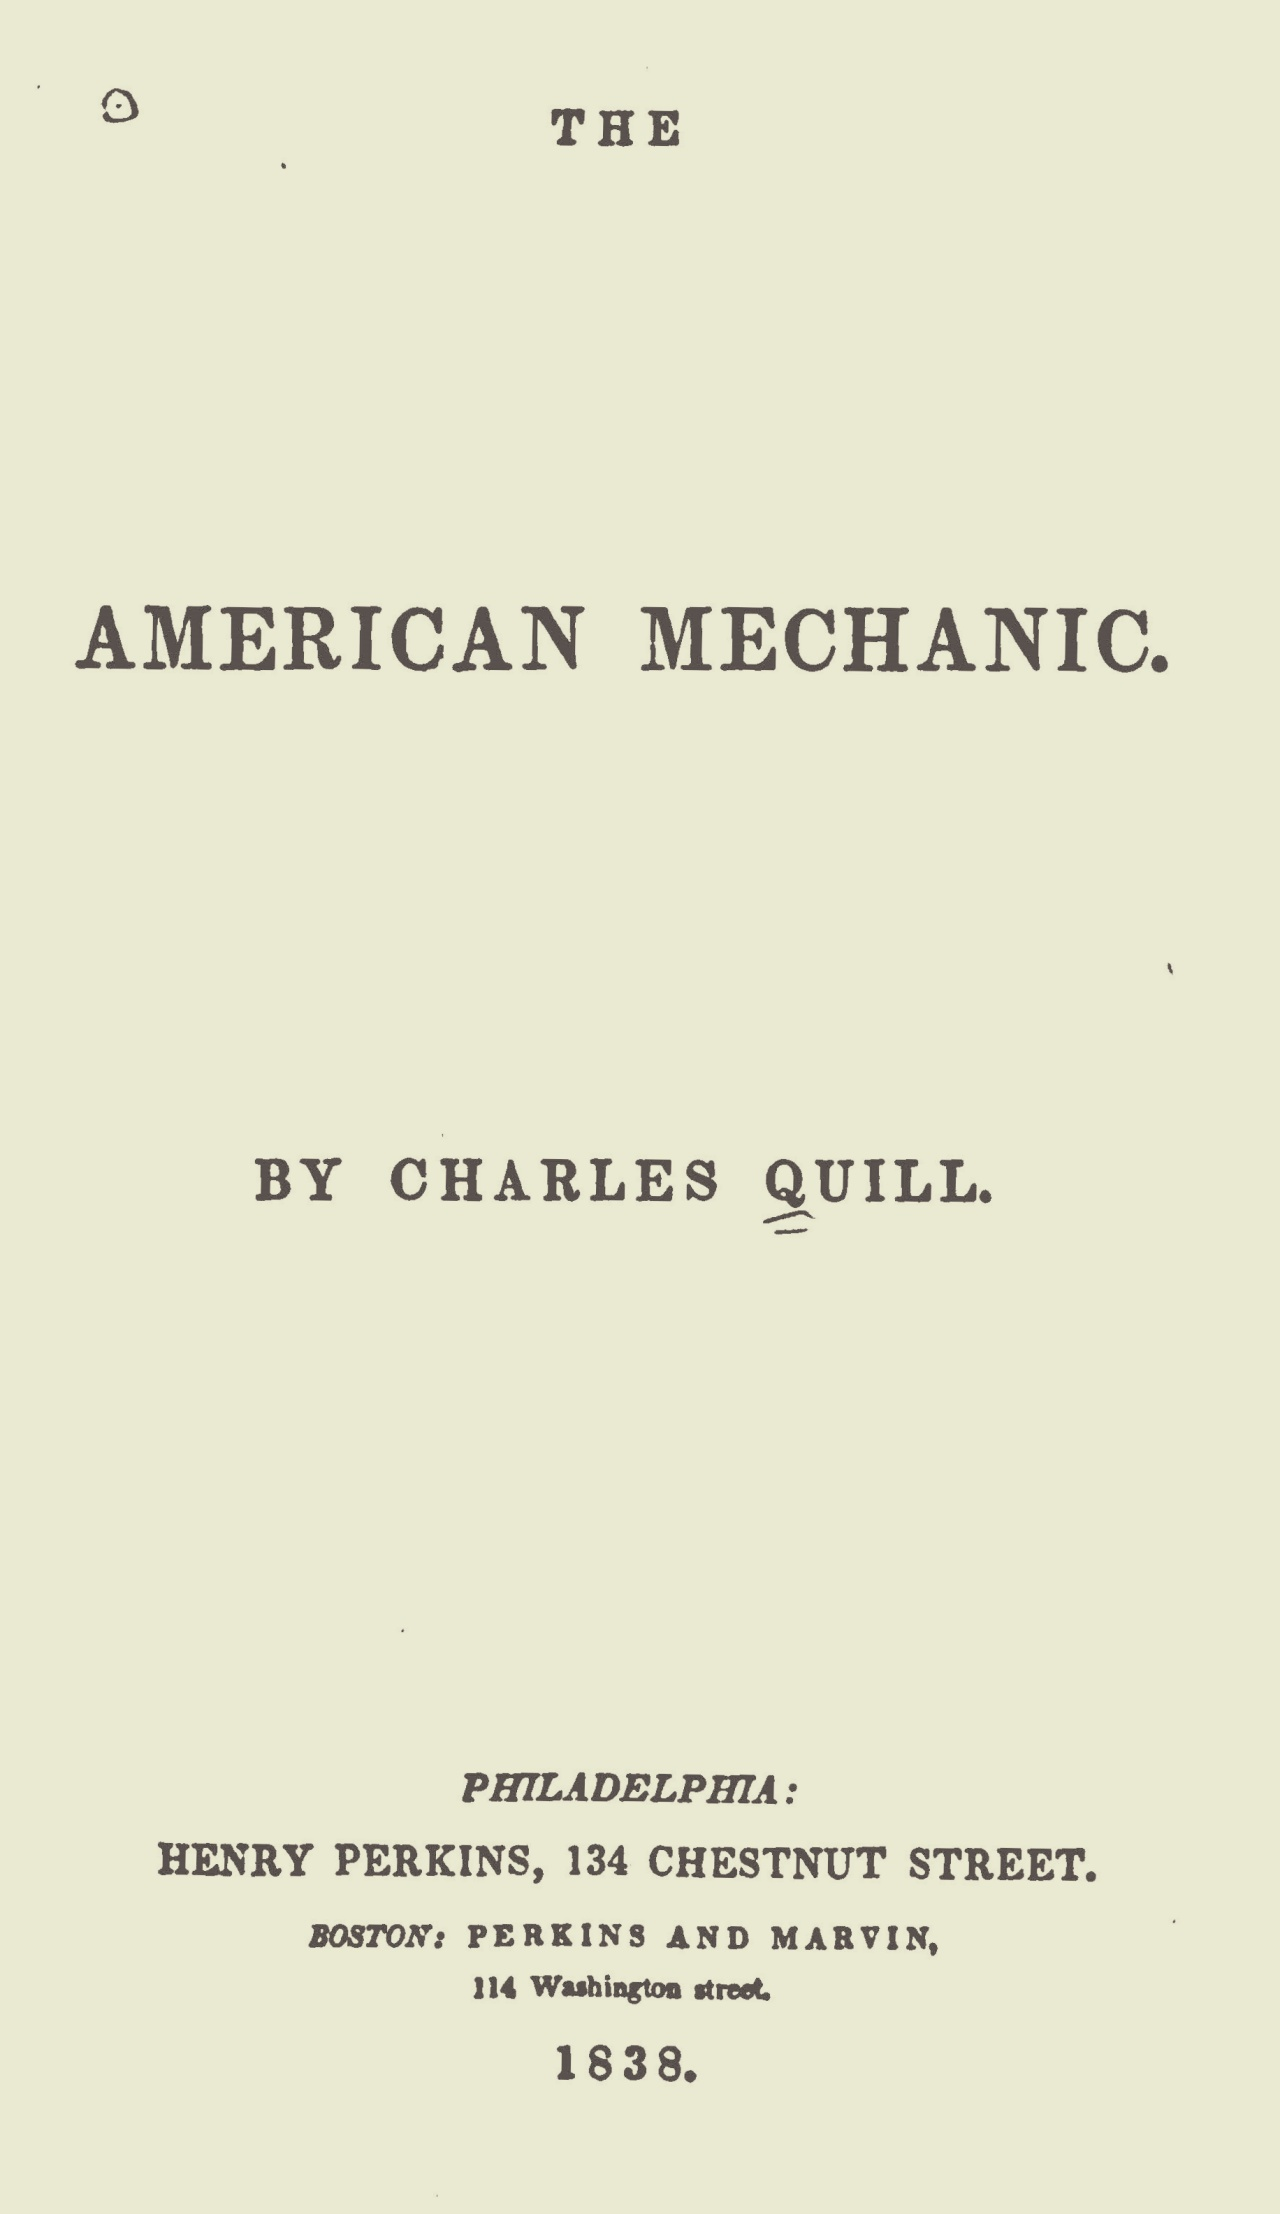 Alexander, James Waddel, The American Mechanic Title Page.jpg